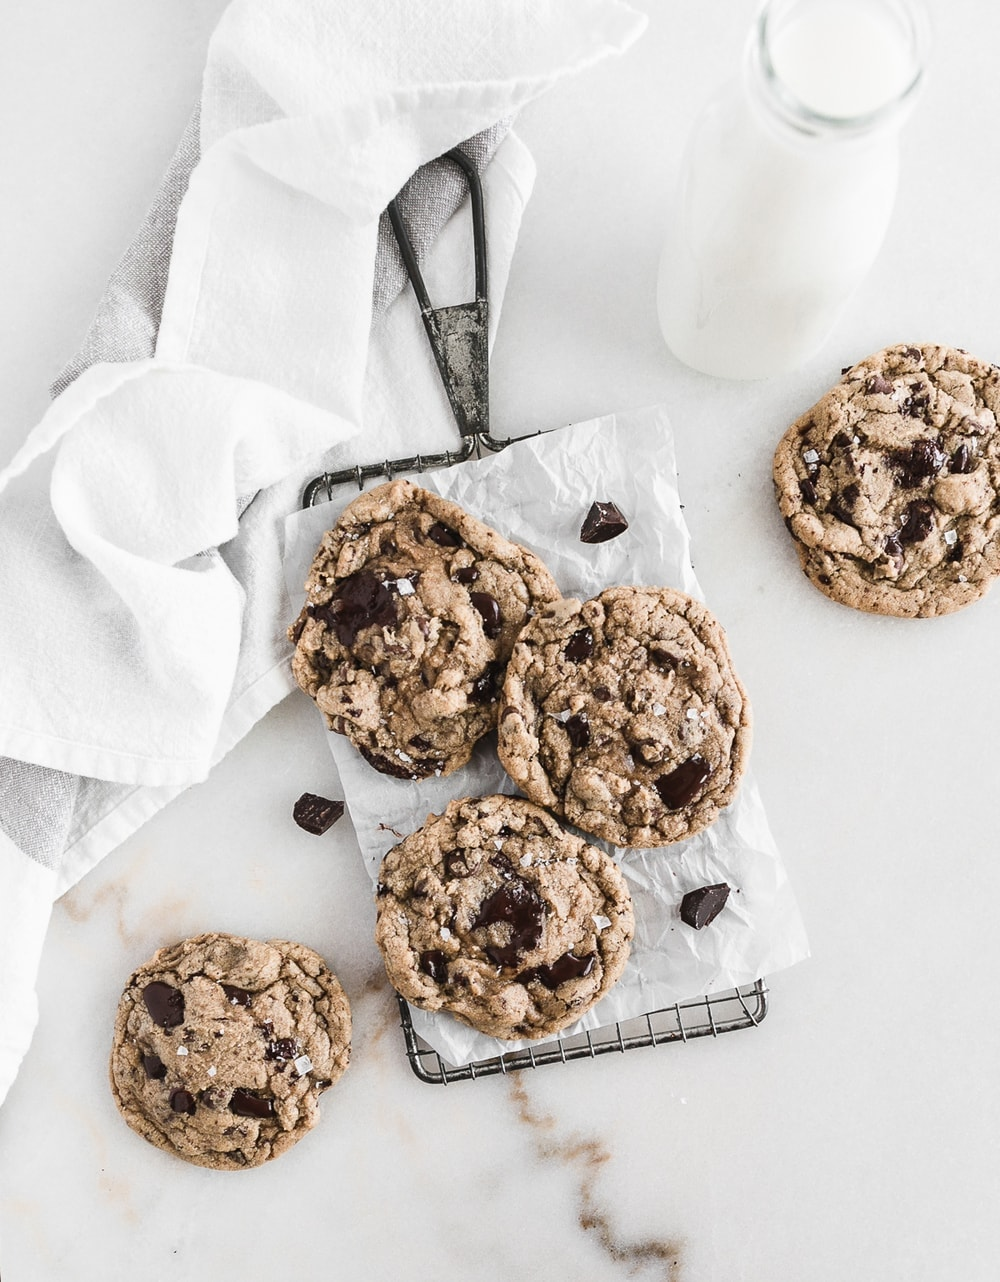 Buttery, rich and chocolatey Neiman Marcus Chocolate Chip Cookies from the Neiman Marcus Cooks cookbook.| via livelytable.com